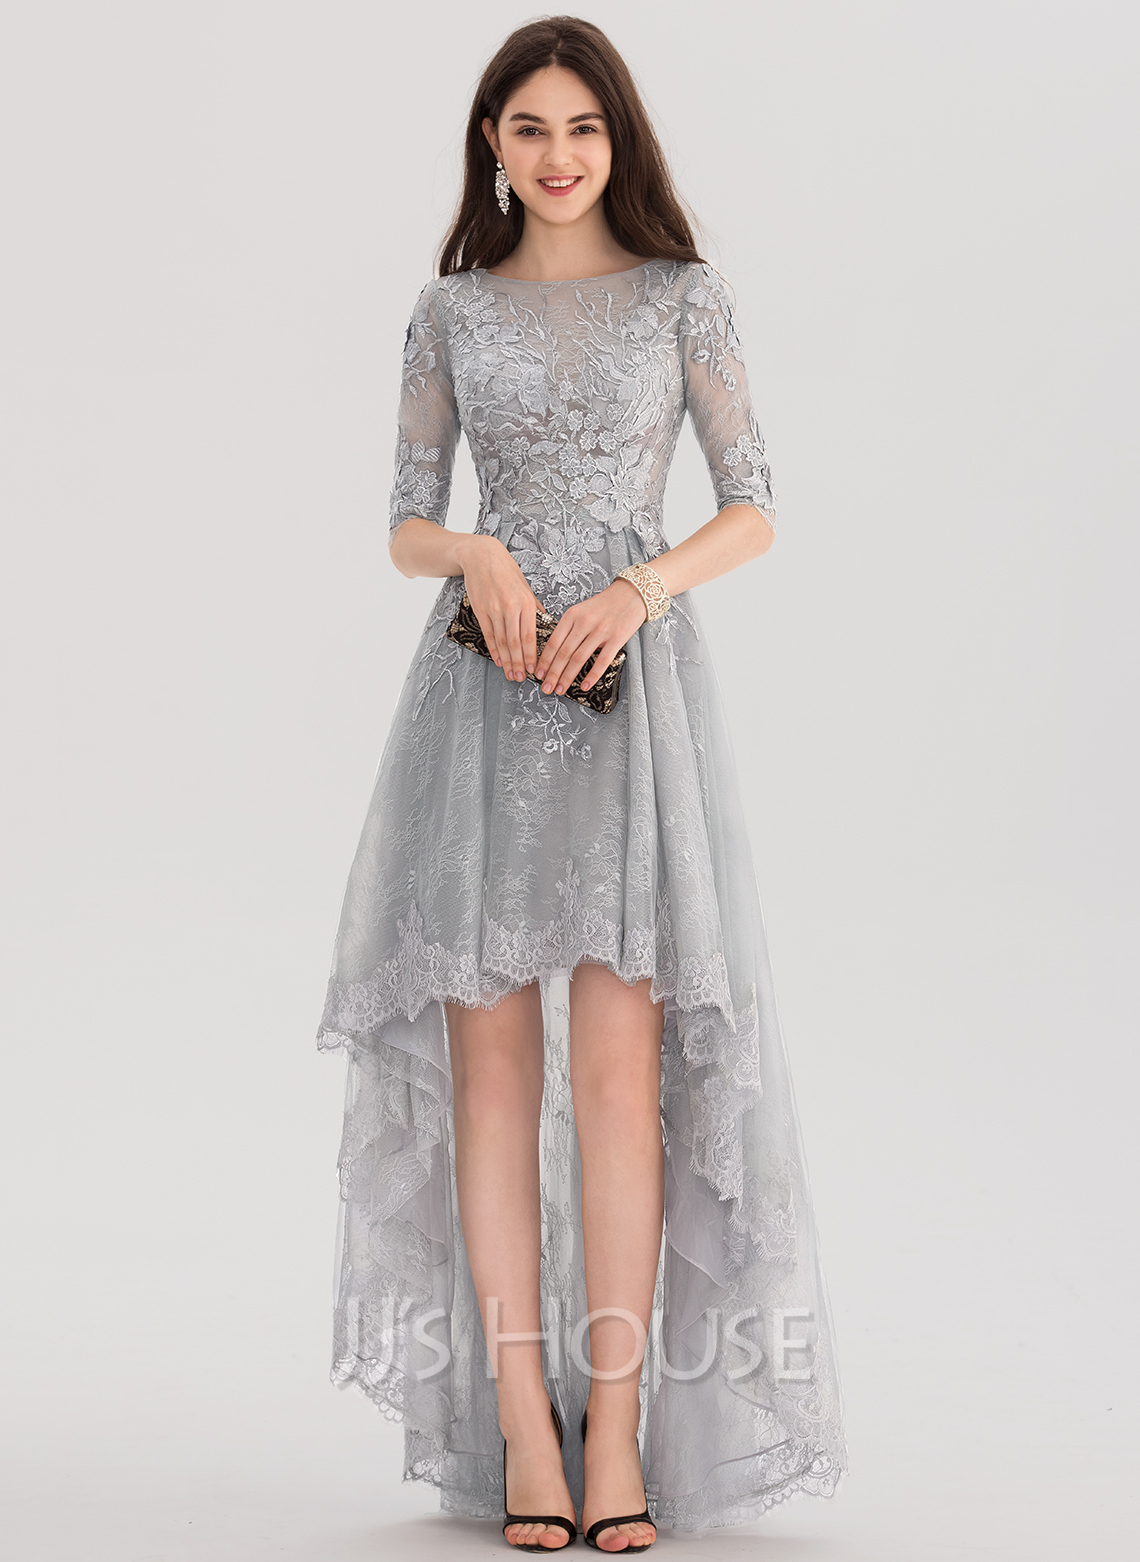 Prom dress rental jjshouse a lineprincess scoop neck asymmetrical tulle lace prom dresses ombrellifo Images